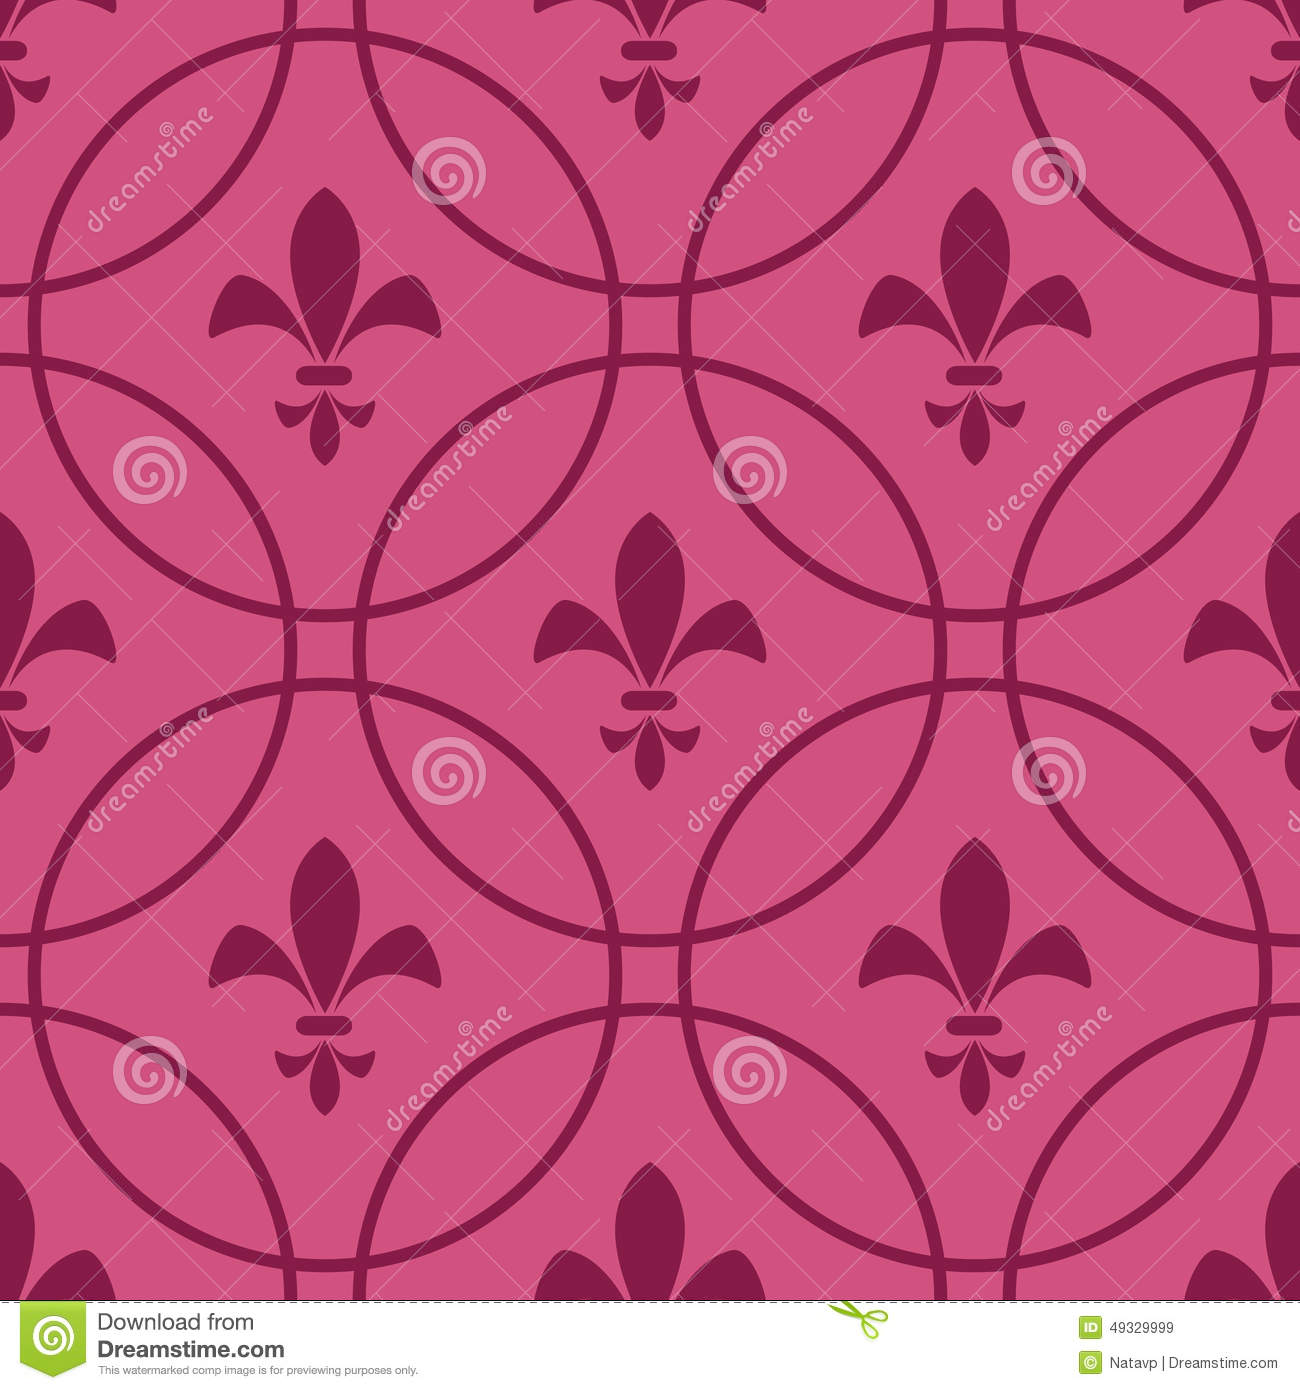 royal pink background - photo #35